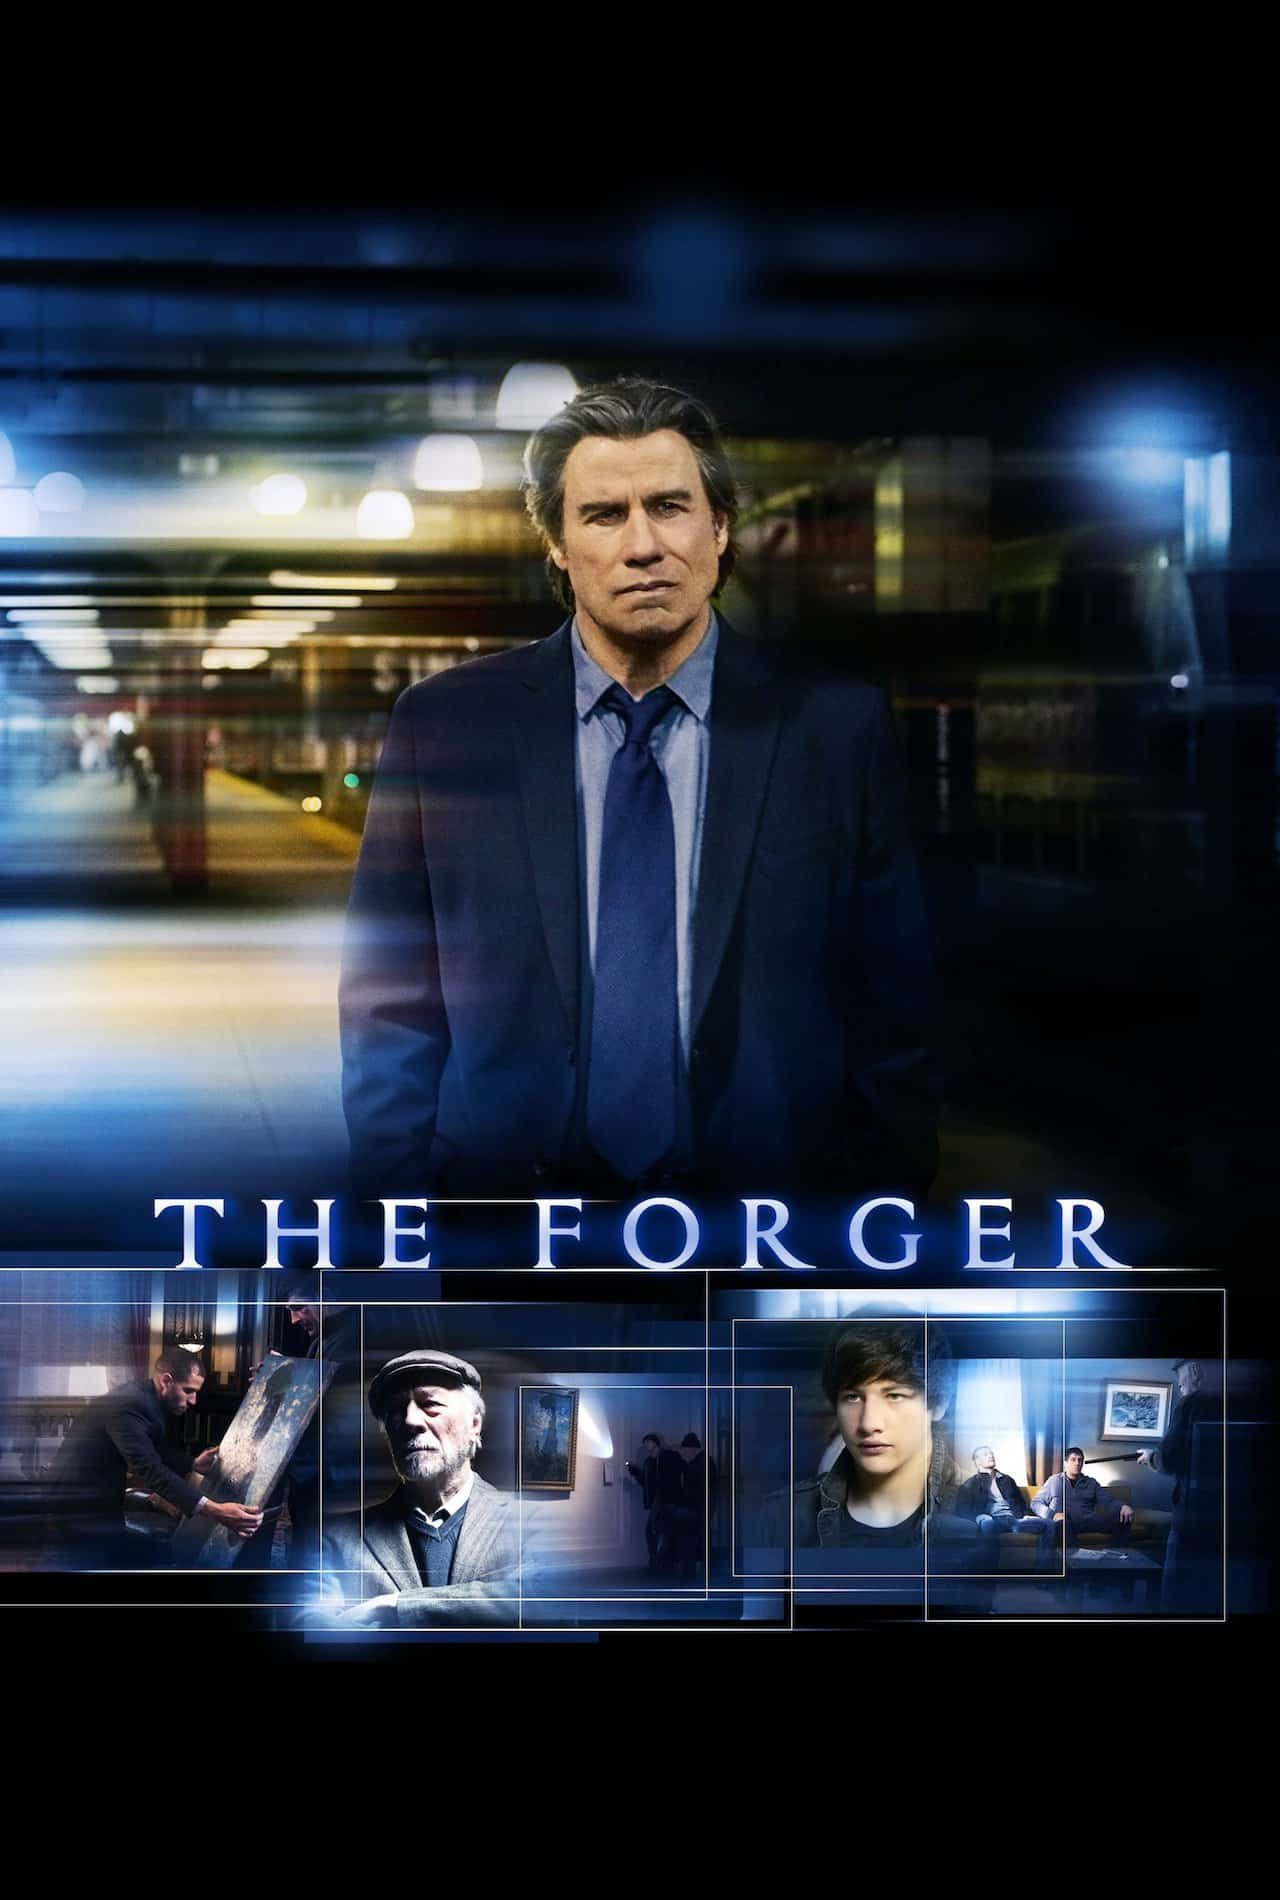 The Forger, 2011